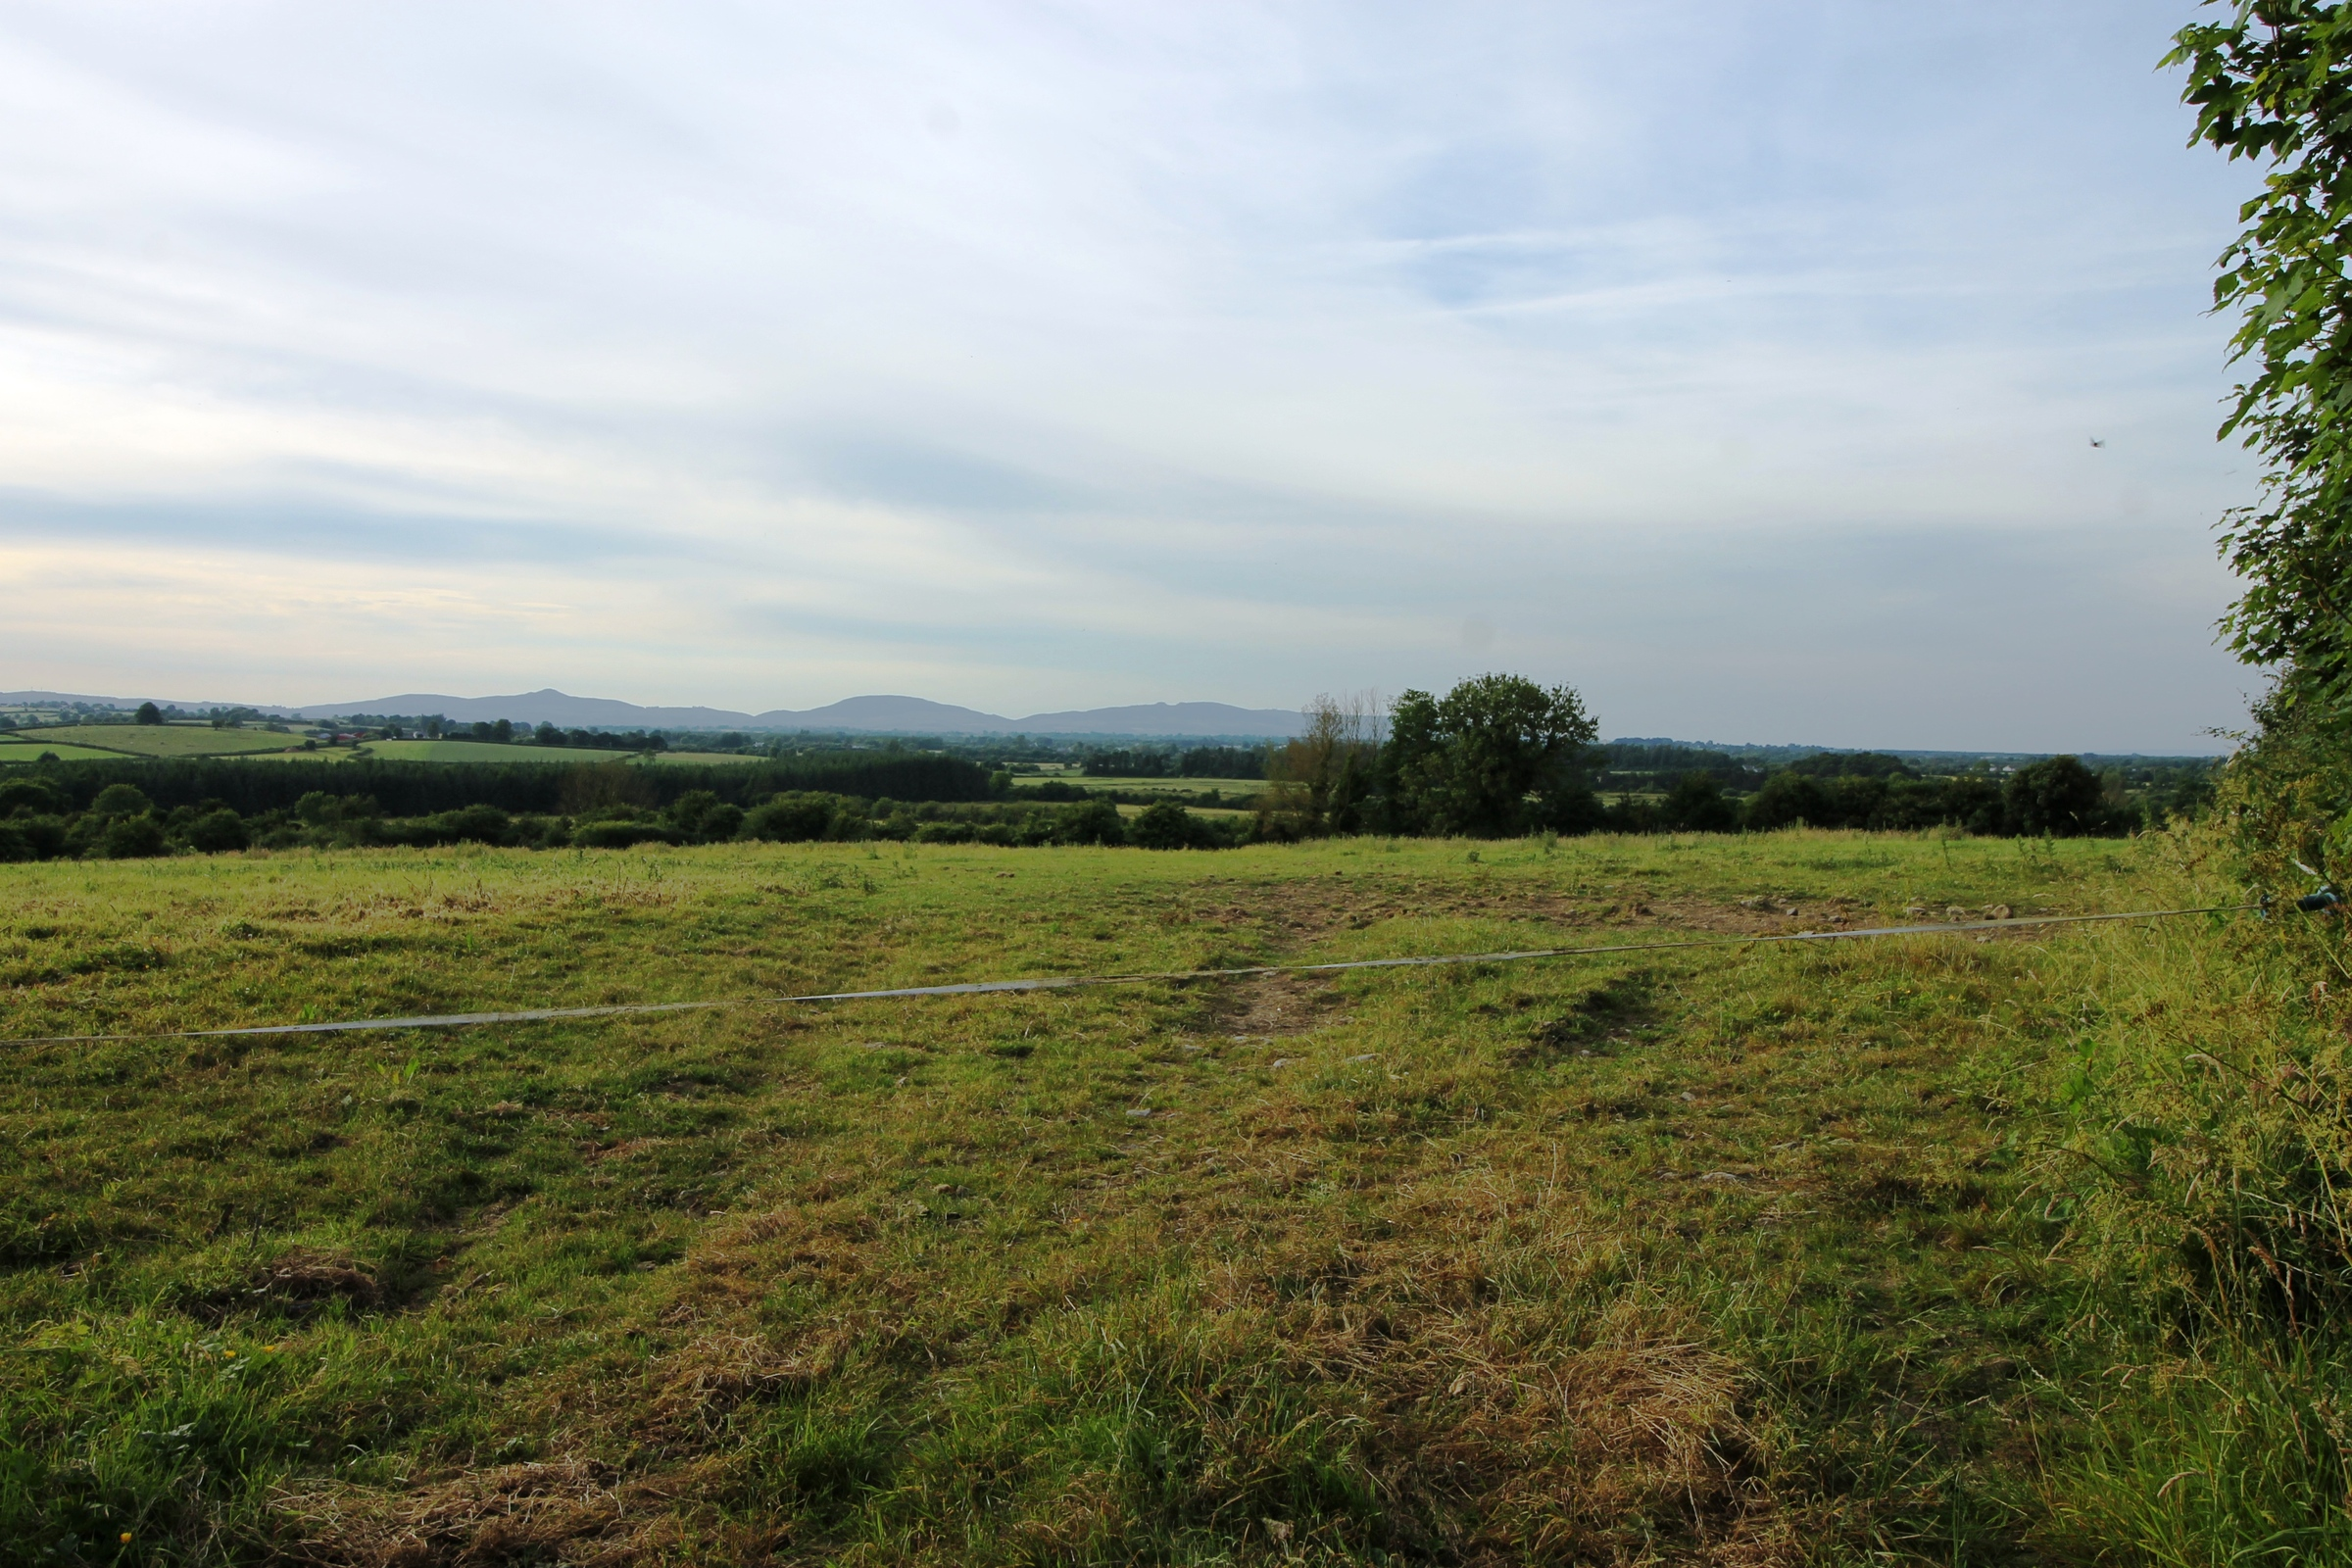 Cormackstown, Thurles, Co. Tipperary